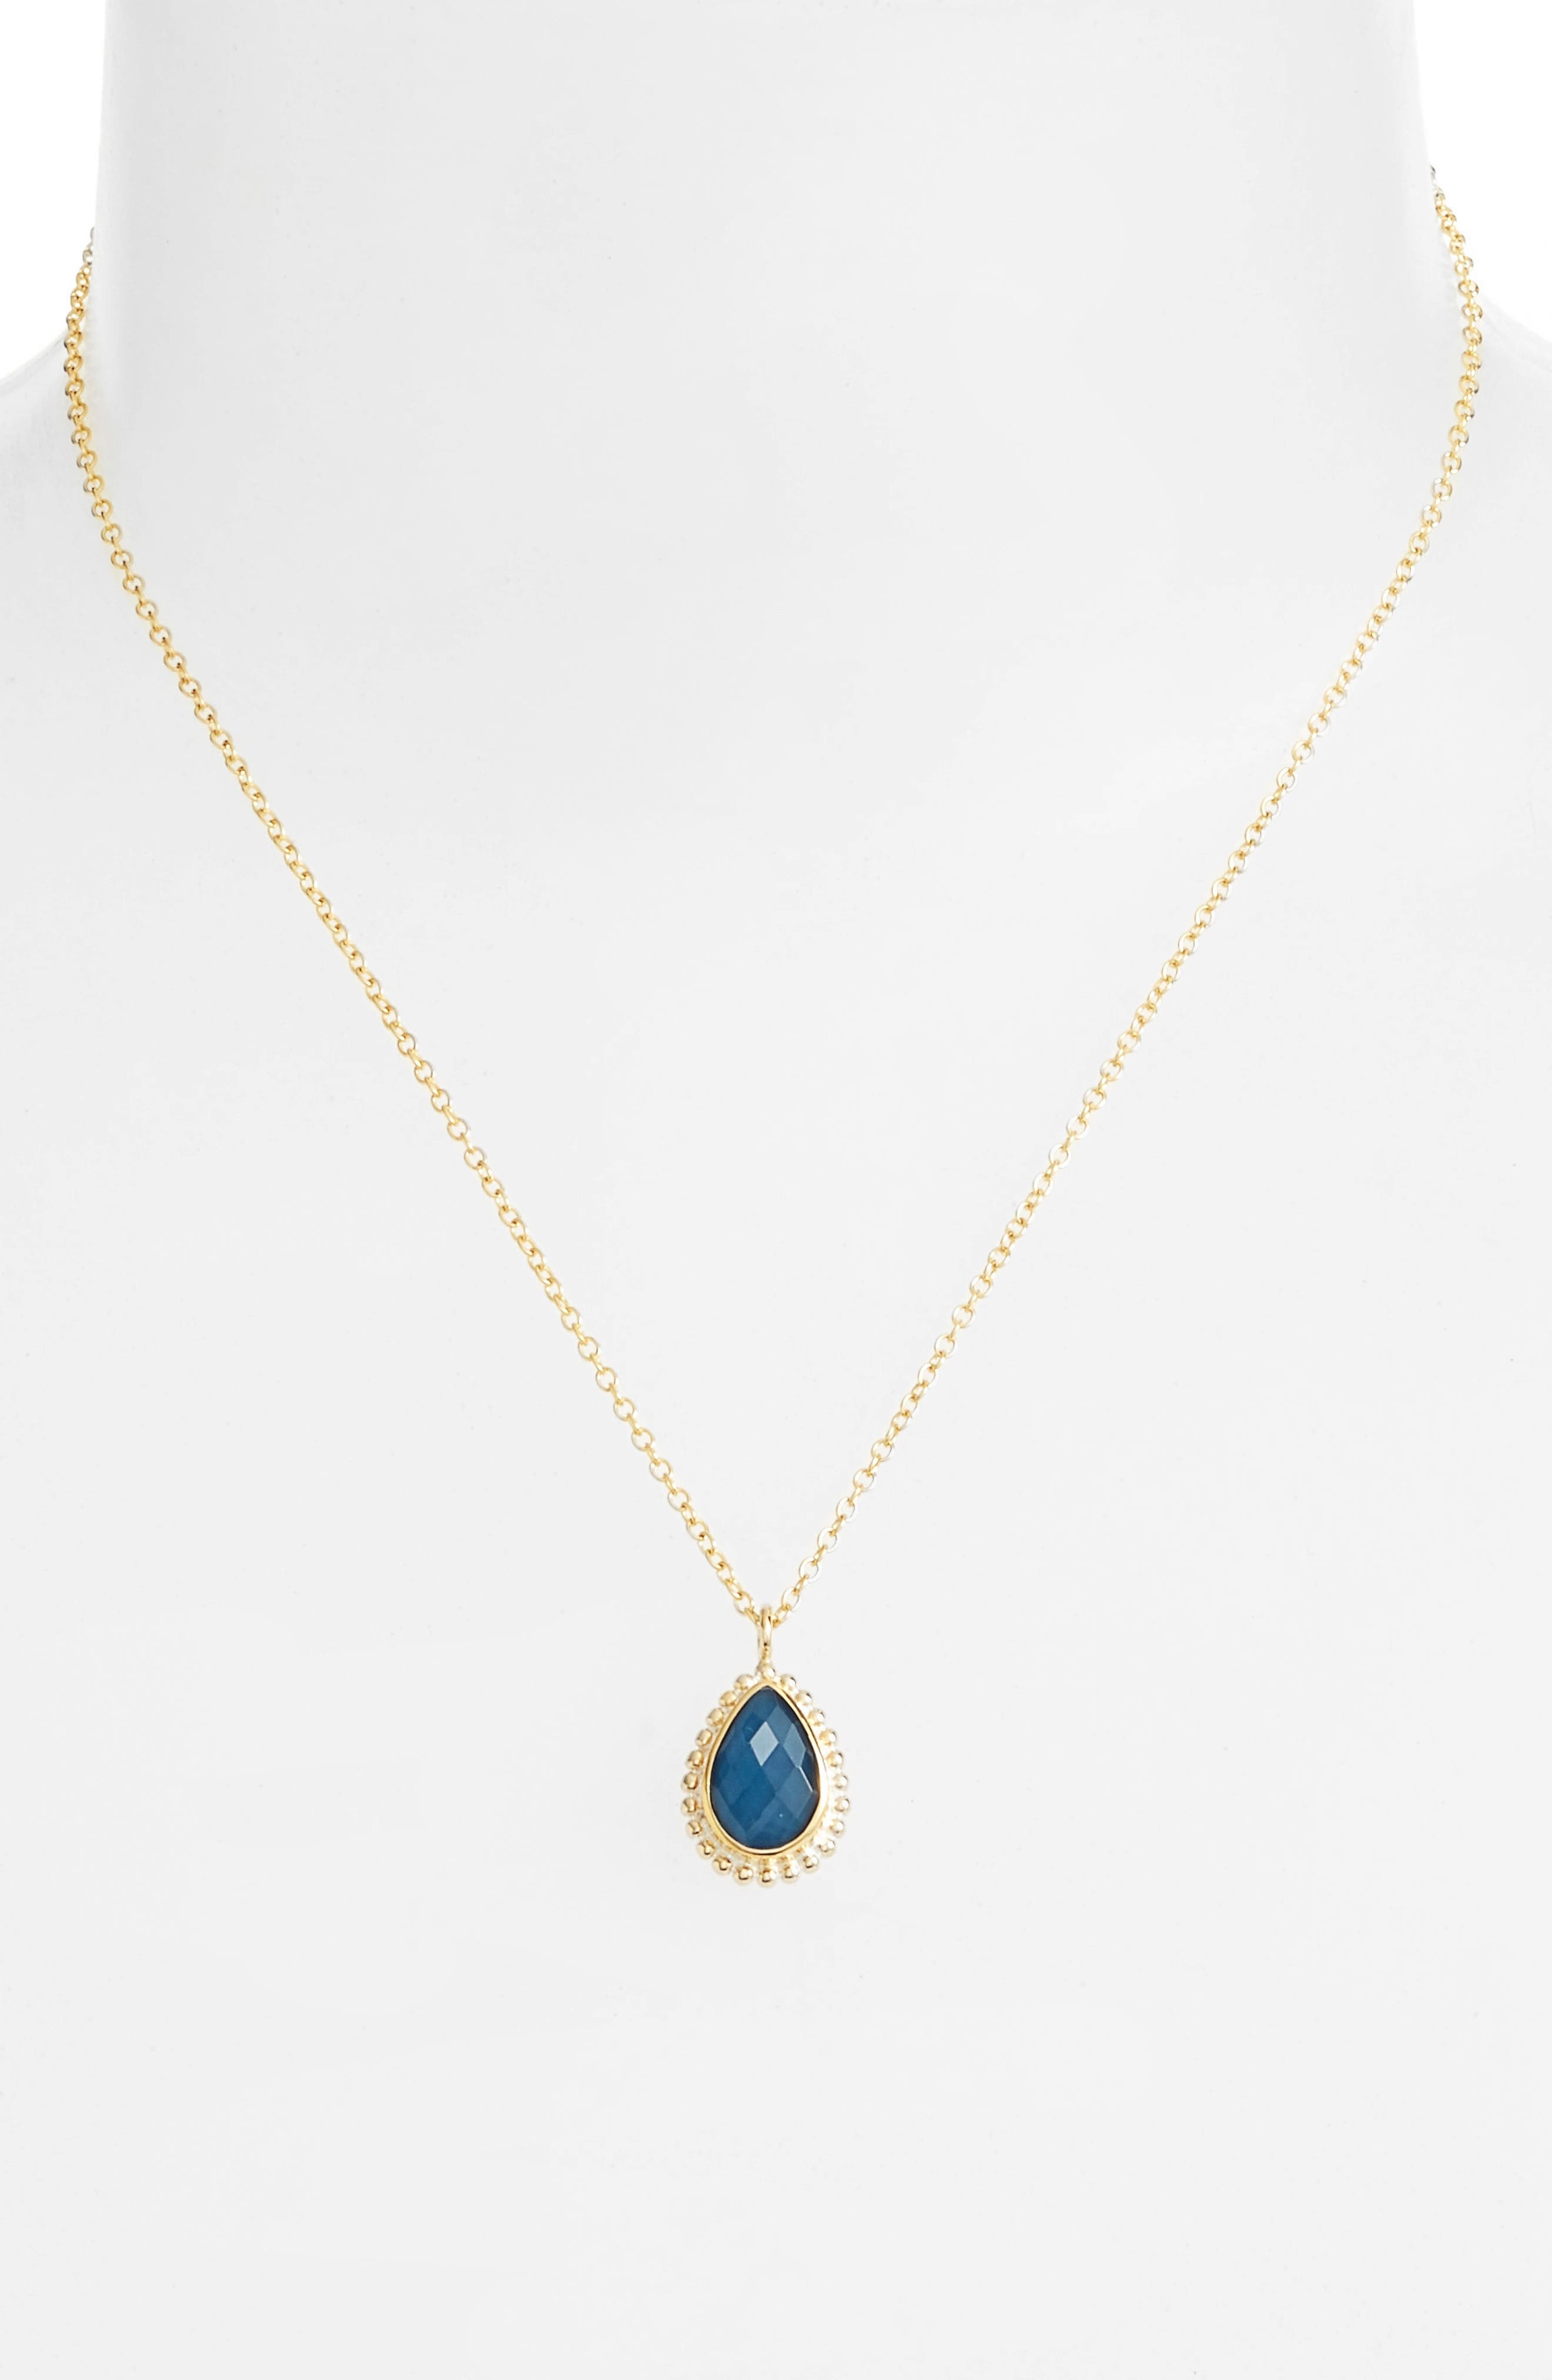 Blue Quartz Teardrop Pendant Necklace,                         Main,                         color, Gold/ Blue Quartz